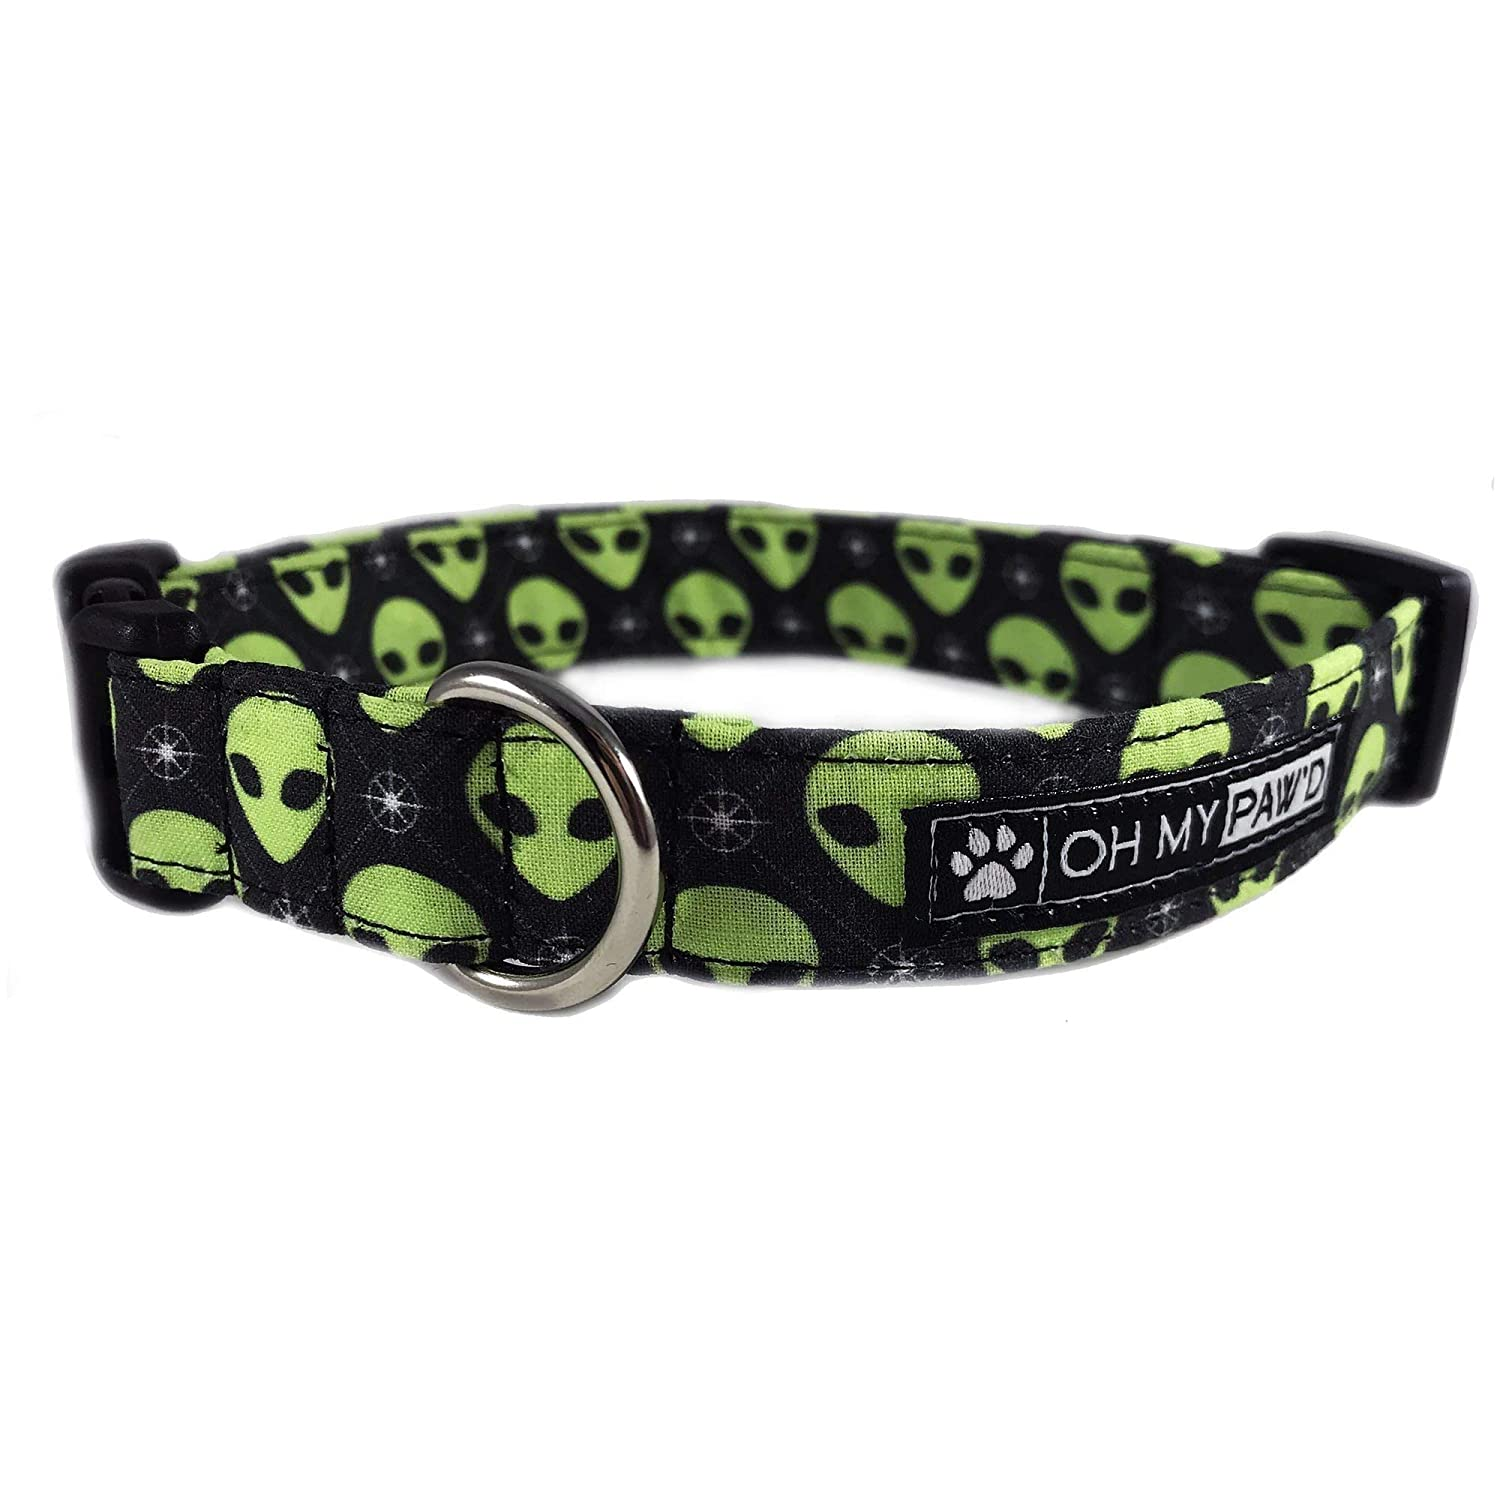 Green Martian Head Dog or Cat Collar for Pets Size Extra Small 5/8